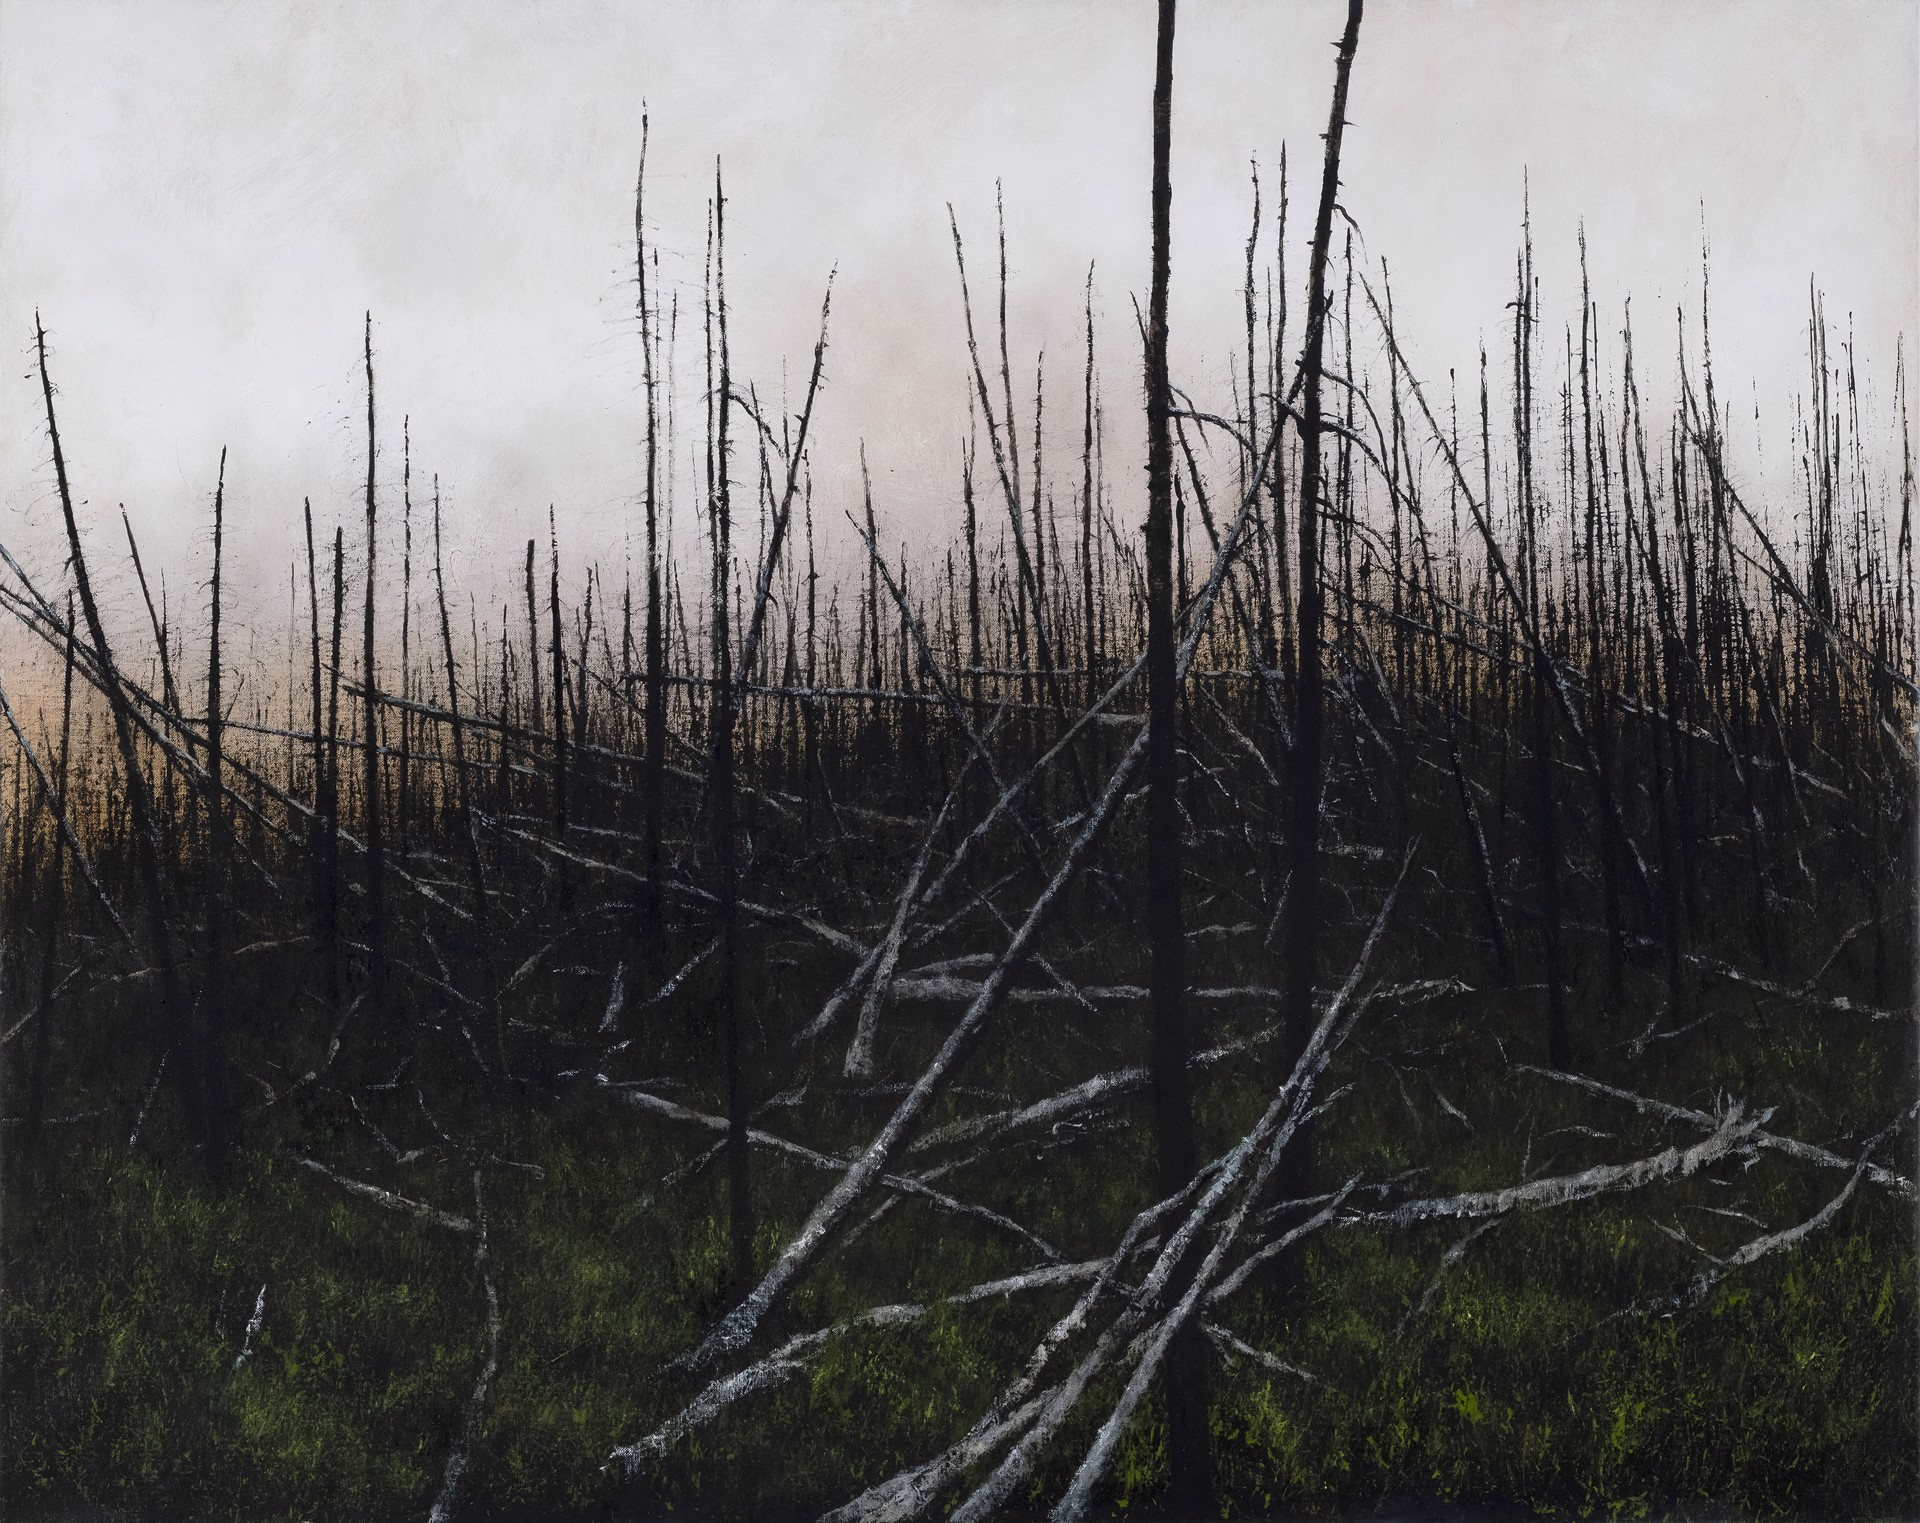 Prescribed Burn by Lisa Lebofsky